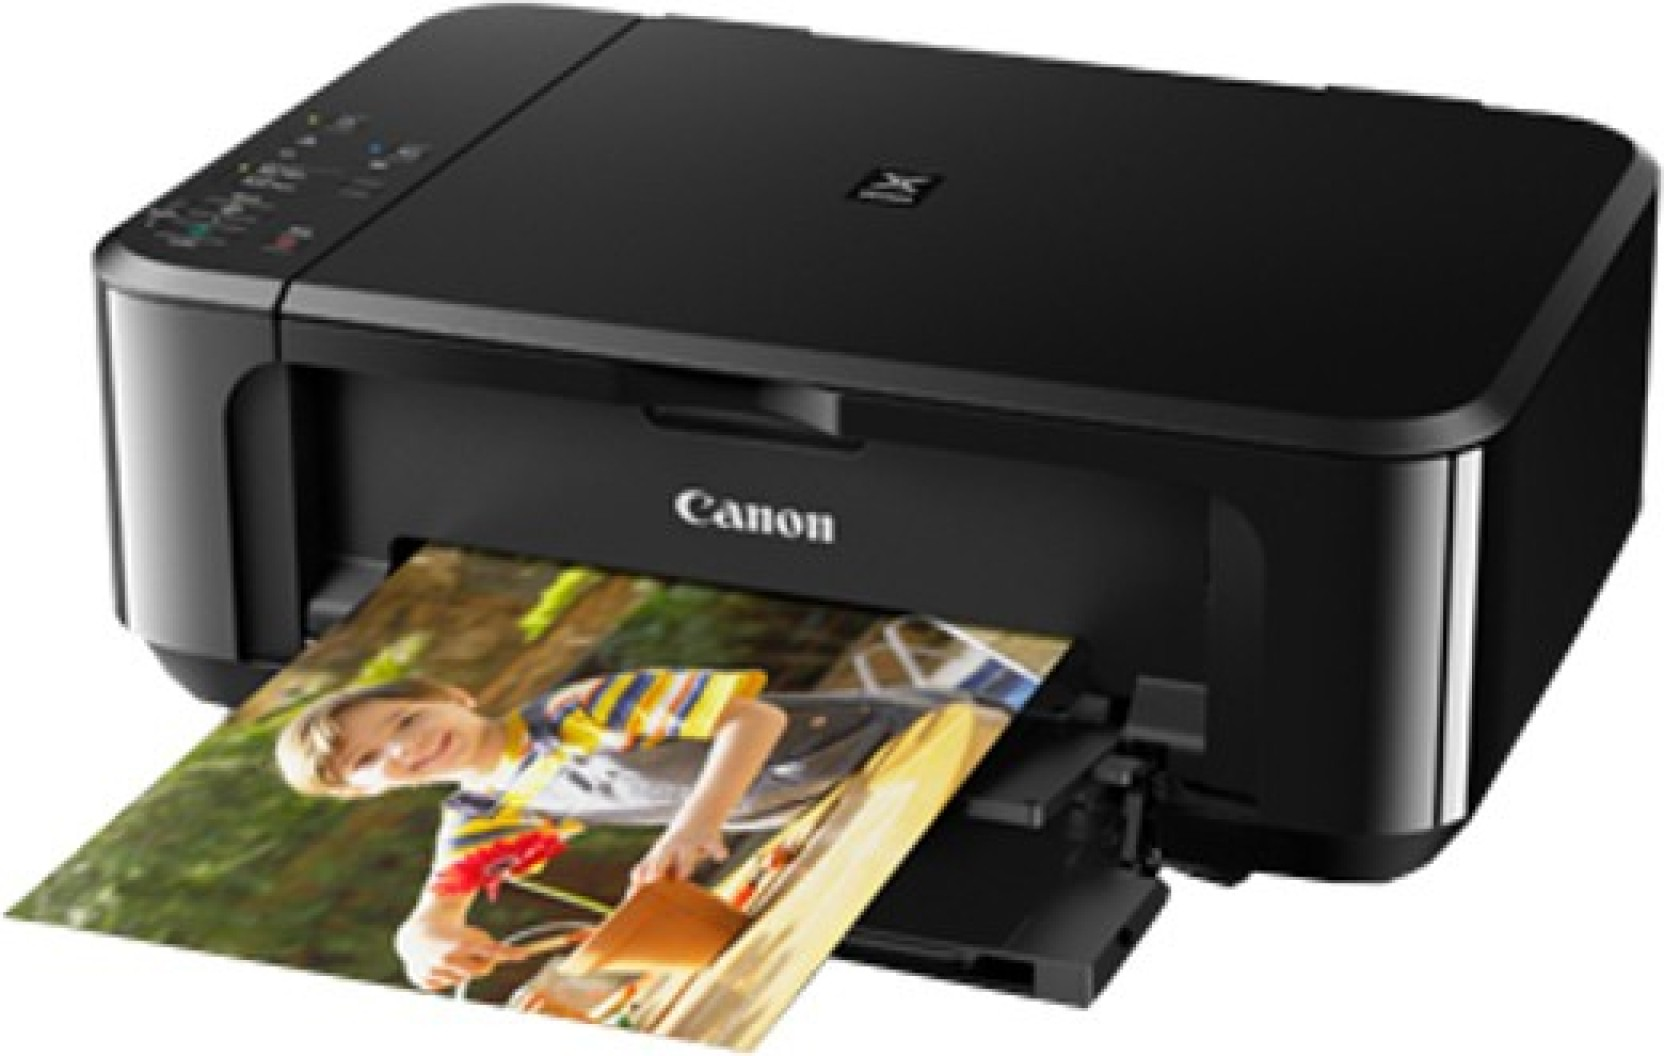 Canon Pixma MG3670 Multi-function Wireless Printer